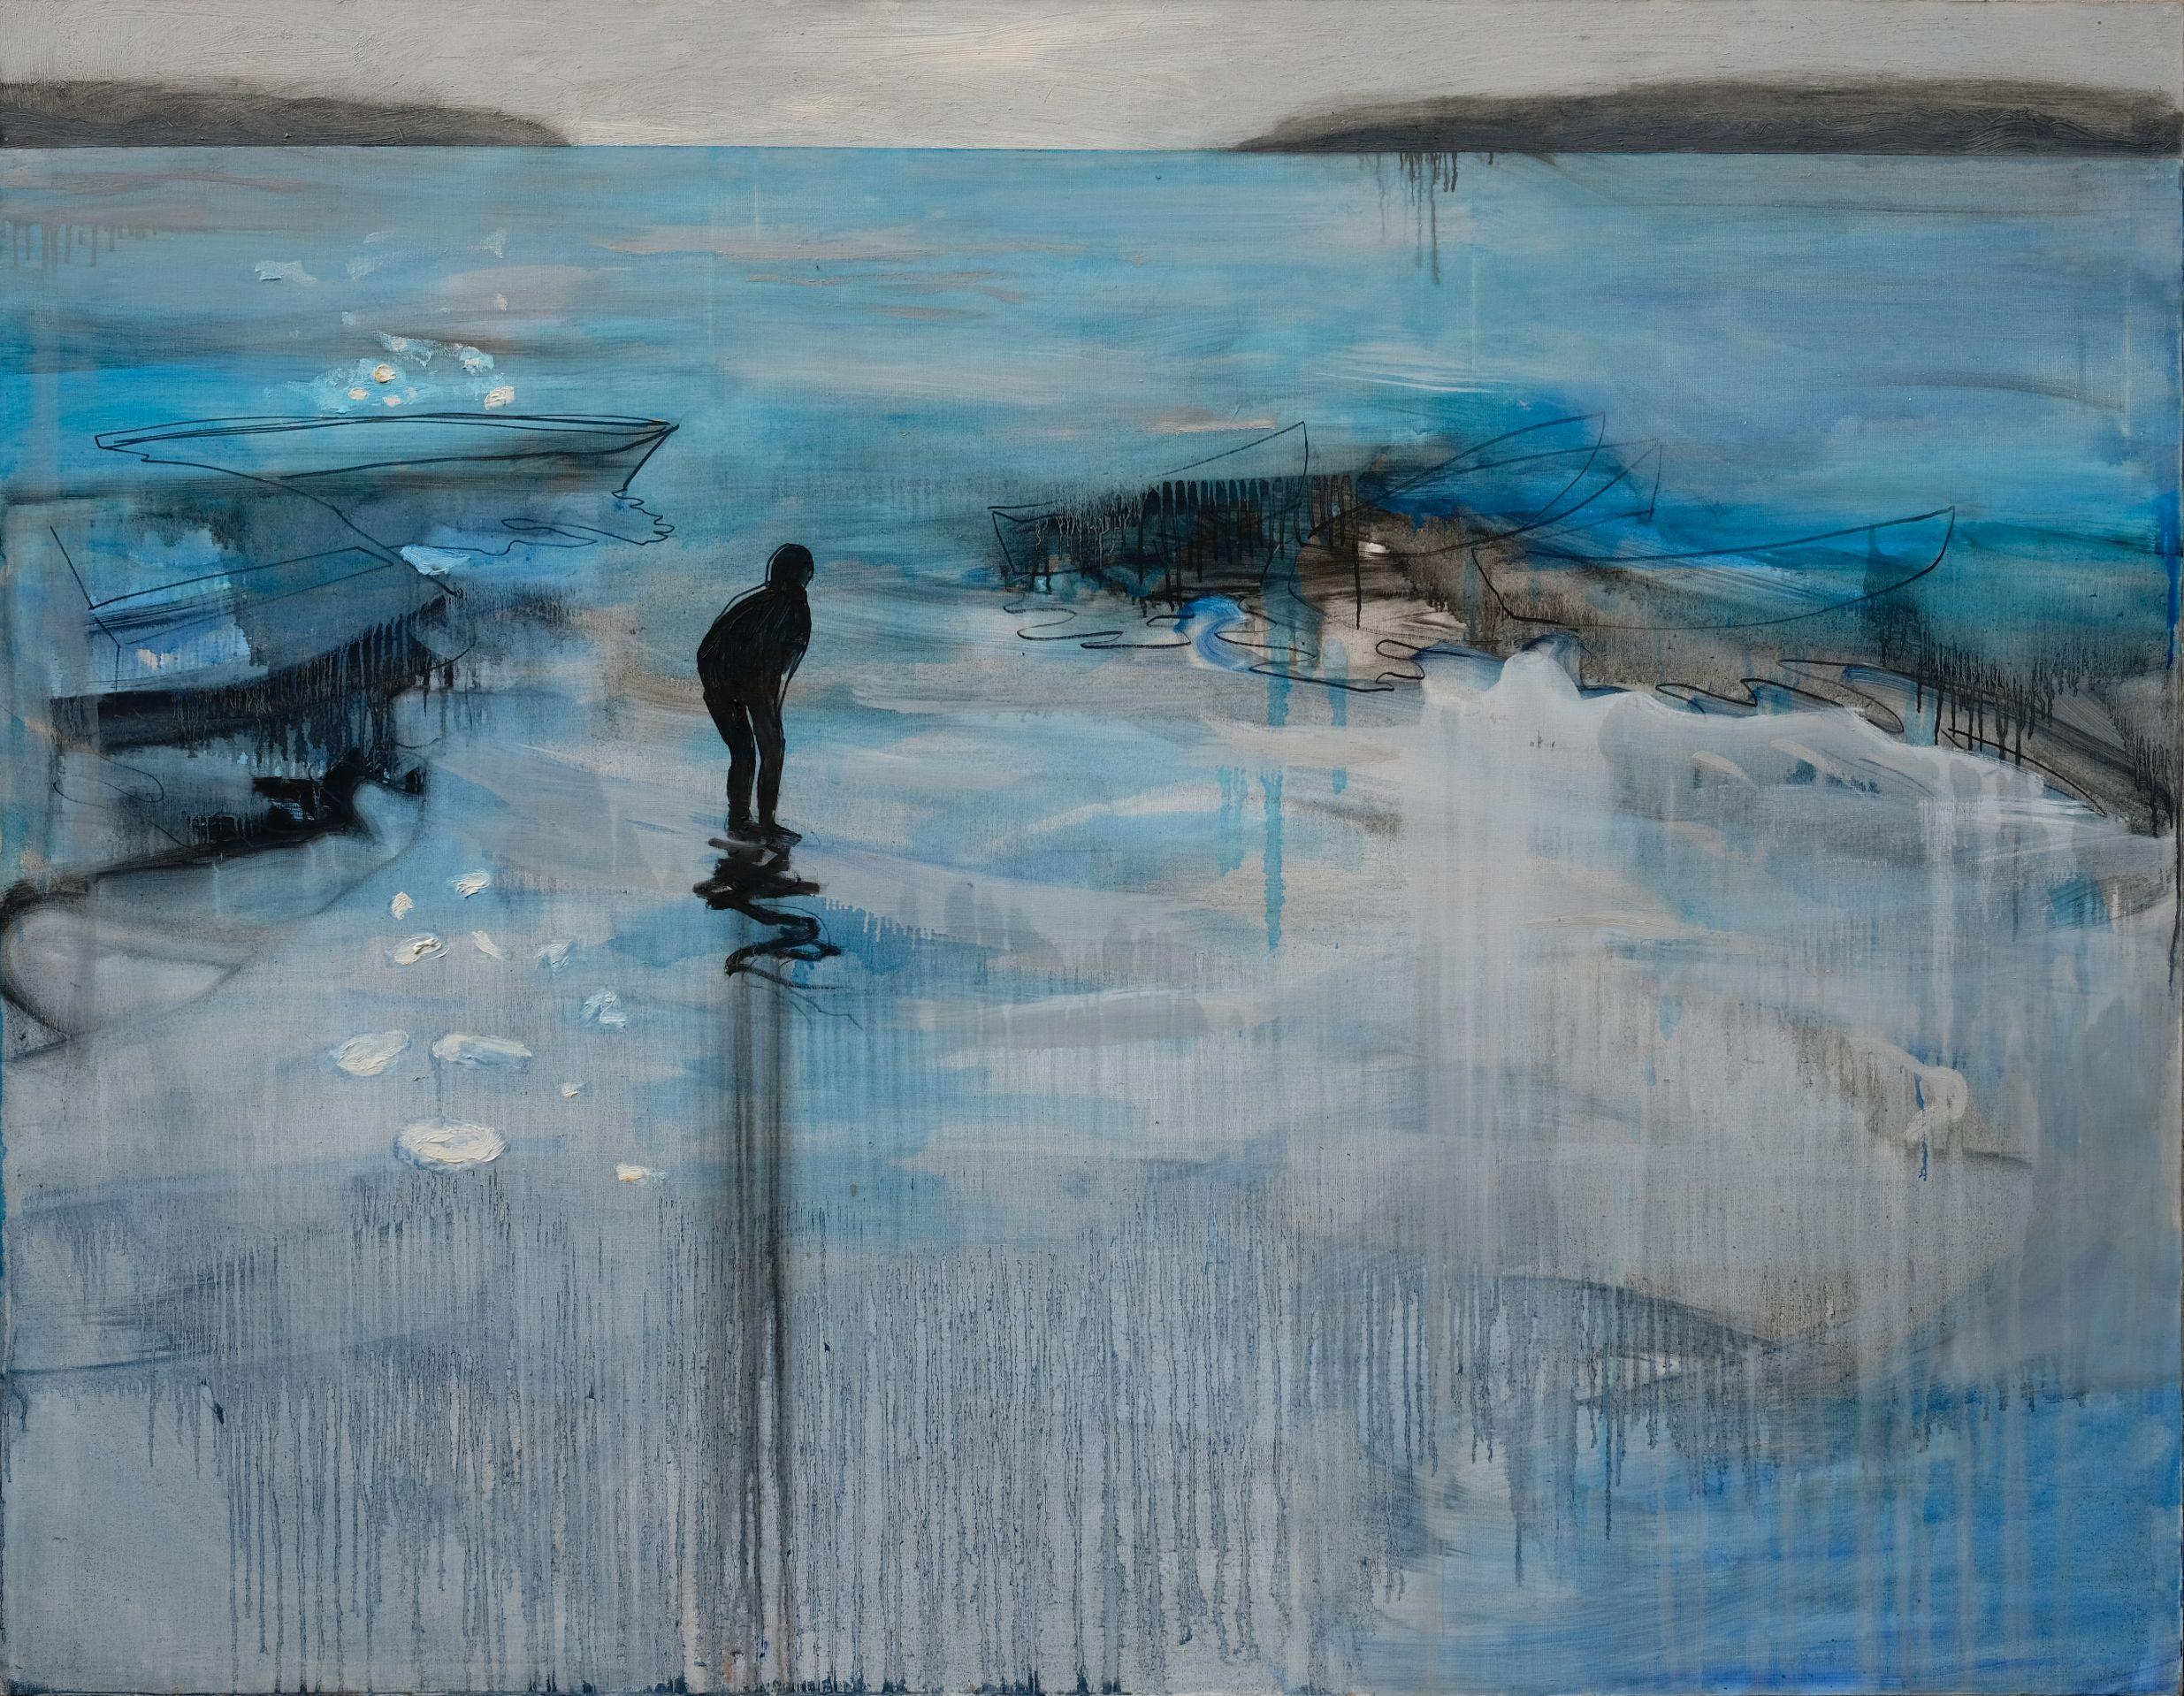 Boy In The Lake 1 - Large Format Landscape Oil Painting, Lake View, Expression